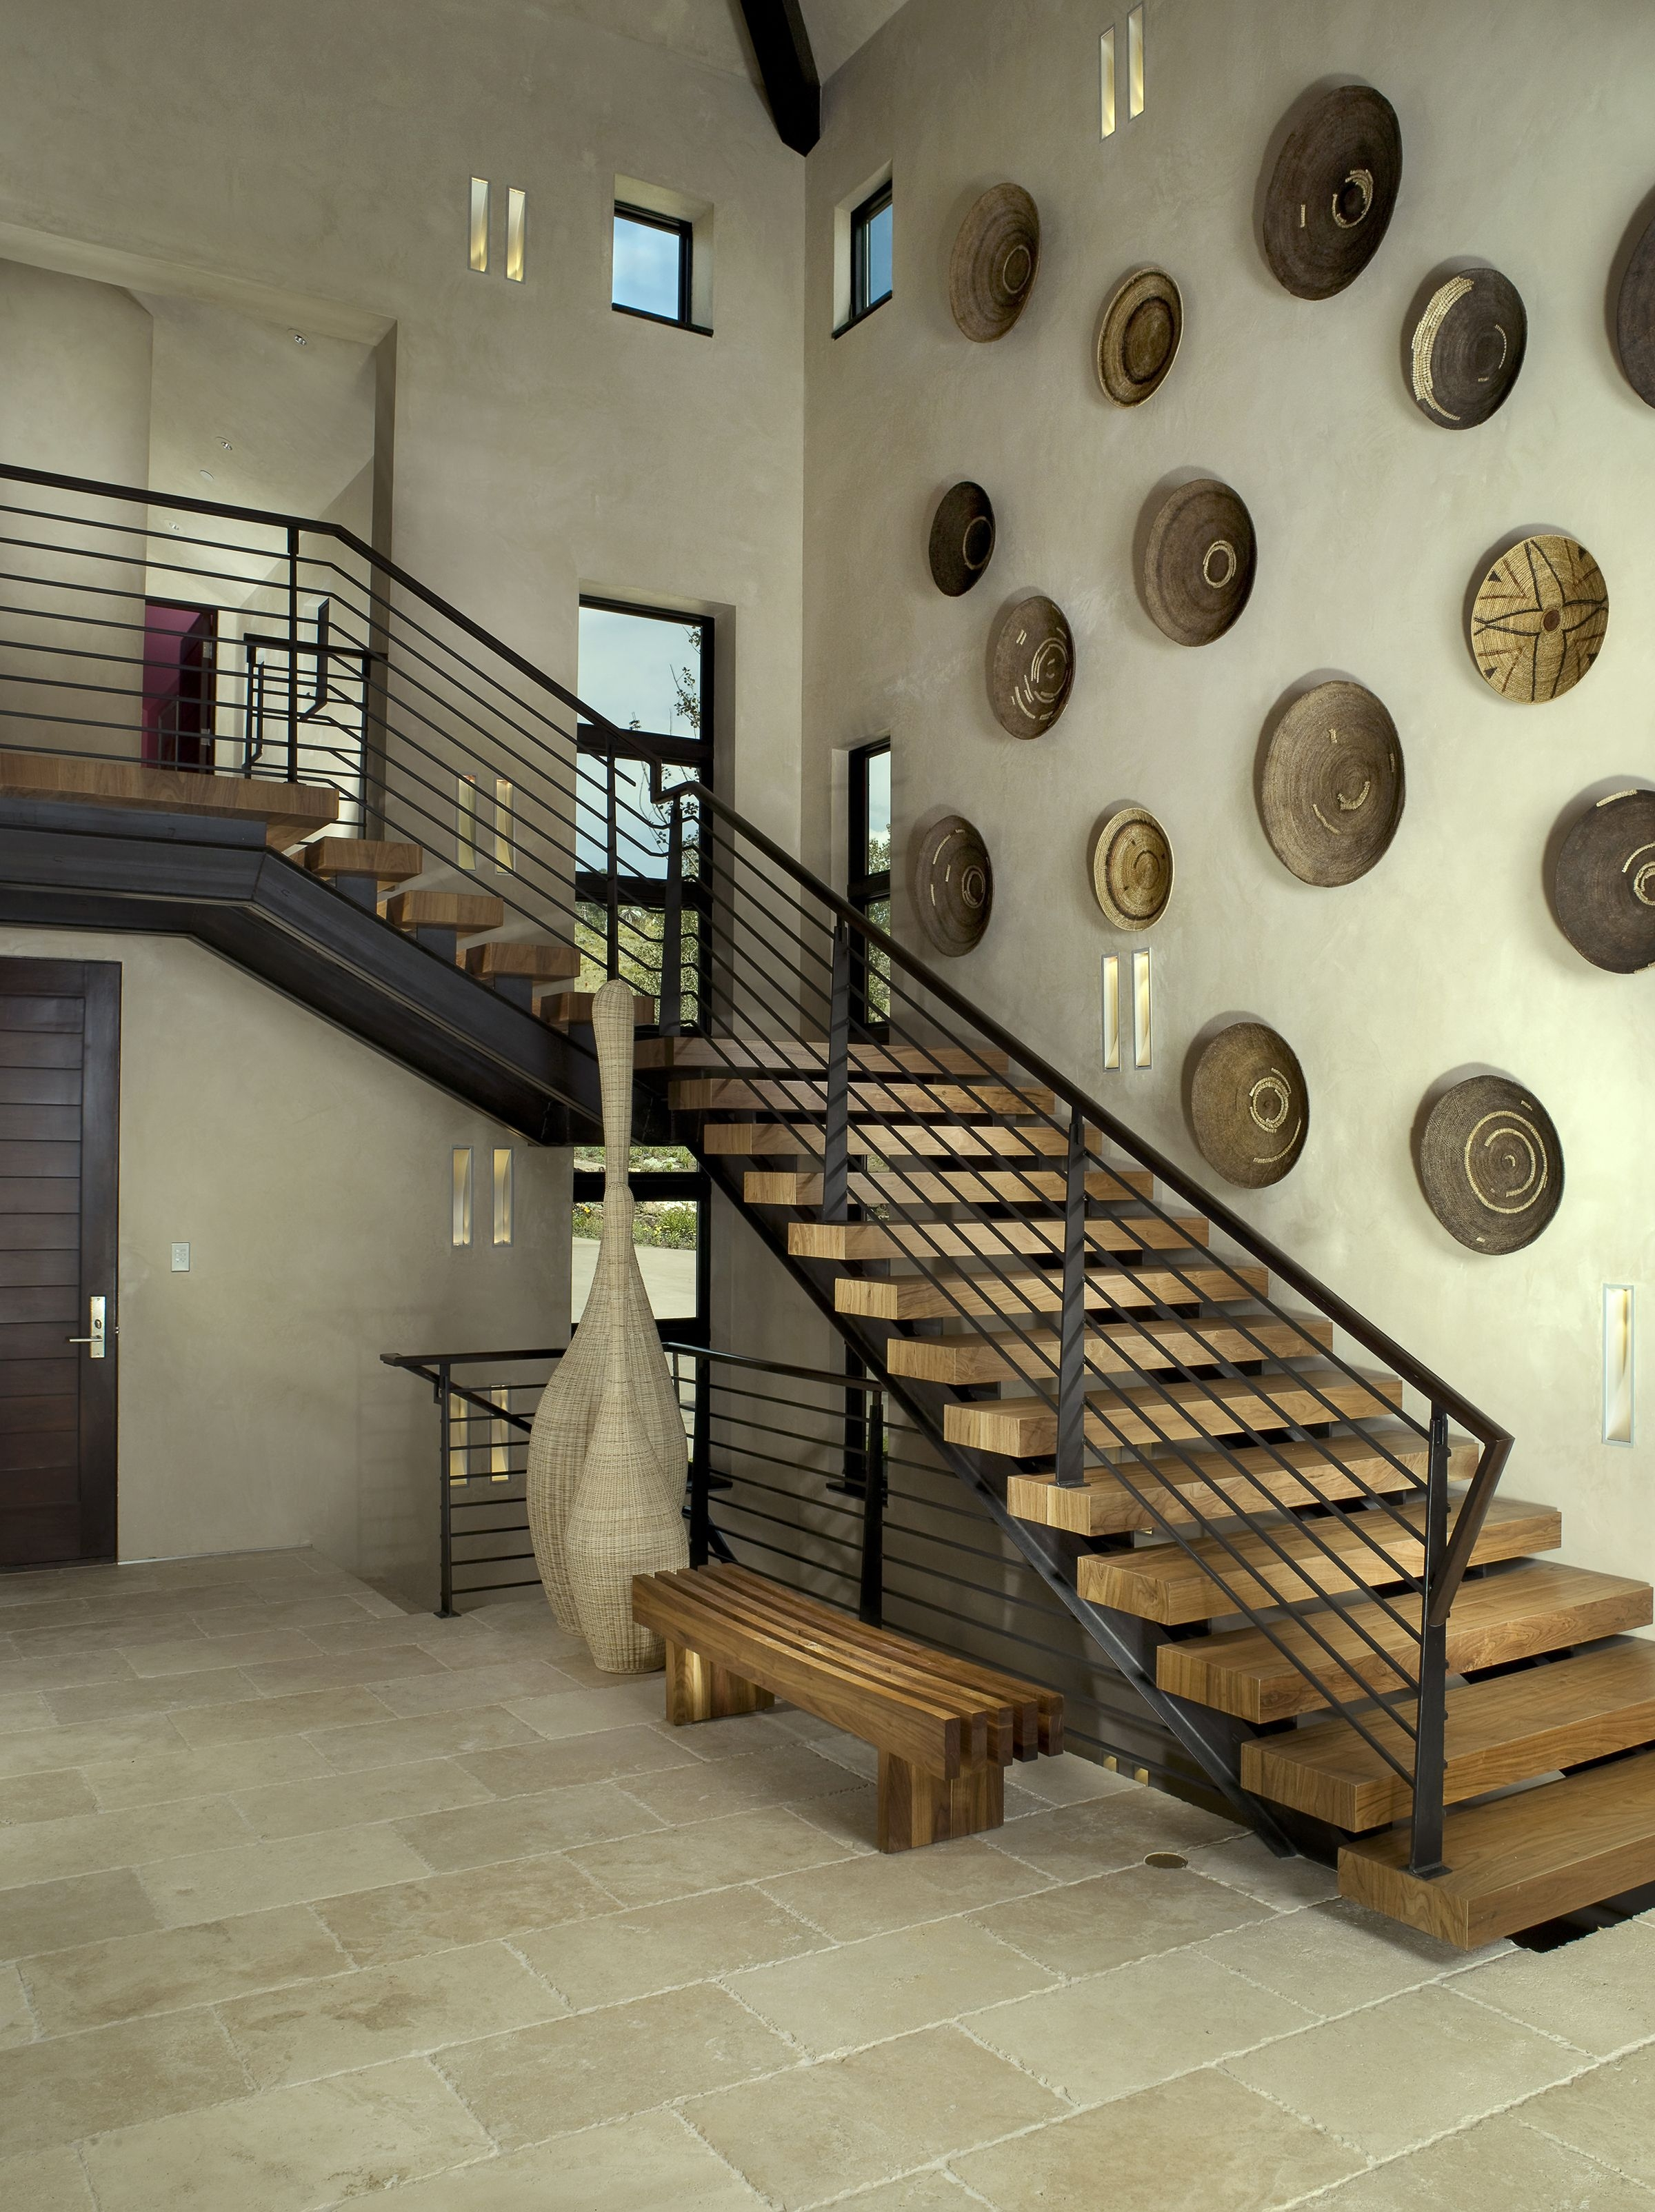 27 Stylish Staircase Decorating Ideas How To Decorate Stairways | Interior Design Staircase Wall | Luxurious Home | Unique | Beautiful | Fancy | Building Interior